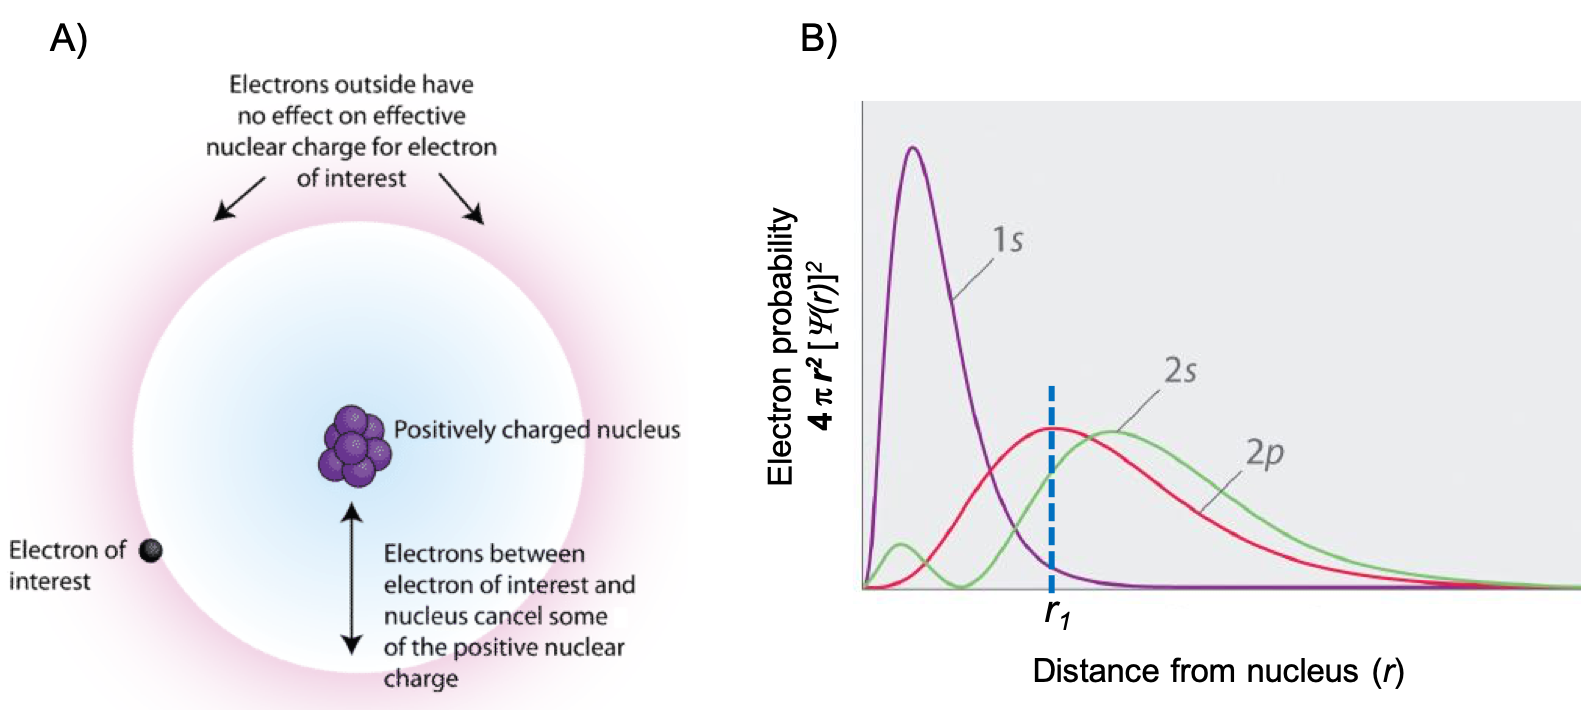 """This figure has two parts: the left part is labeled """"A"""" and the right part is labeled """"B"""". For part A, there is a representation of an atom. There is a blob of purple spheres in the center that is labeled """"positively charged nucleus"""". This is surrounded by a blue cloud. On the outside of the blue cloud is a red cloud. At the interface of the blue and red clouds is an electron labeled """"electron of interest"""". There is a double headed arrow in the blue cloud that points between the nucleus and the interface between the blue and red cloud that is labeled """"electrons between electron of interest and nucleus cancel some of the positive nuclear charge"""". There is an arrow pointing to the red cloud that states """"Electrons outside have no effect on effective nuclear charge for electron of interest. In part B, there is a plot of electron probability versus distance from the nucleus (r). Electron probability is defined as 4 multiplied by pi multiplied by the radius squared multiplied by the wave function as a function of r squared. There are 3 curves plotted. A purple curve has one tall peak and is labeled """"1 s"""". A green trace has a small peak at about the same x value as the purple peak, but much smaller. Then it has a taller peak at a larger x value. Between the two peaks, the intensity dips back to zero. This curve is labeled """"2 s"""". The third trace is red and has a single peak at an x distance between the peak for the purple graph and the taller peak for the green graph. This trace is labeled """"2 p"""". A dotted line is drawn upward from x equals r subscript 1 on the x axis to the peak of the red curve."""